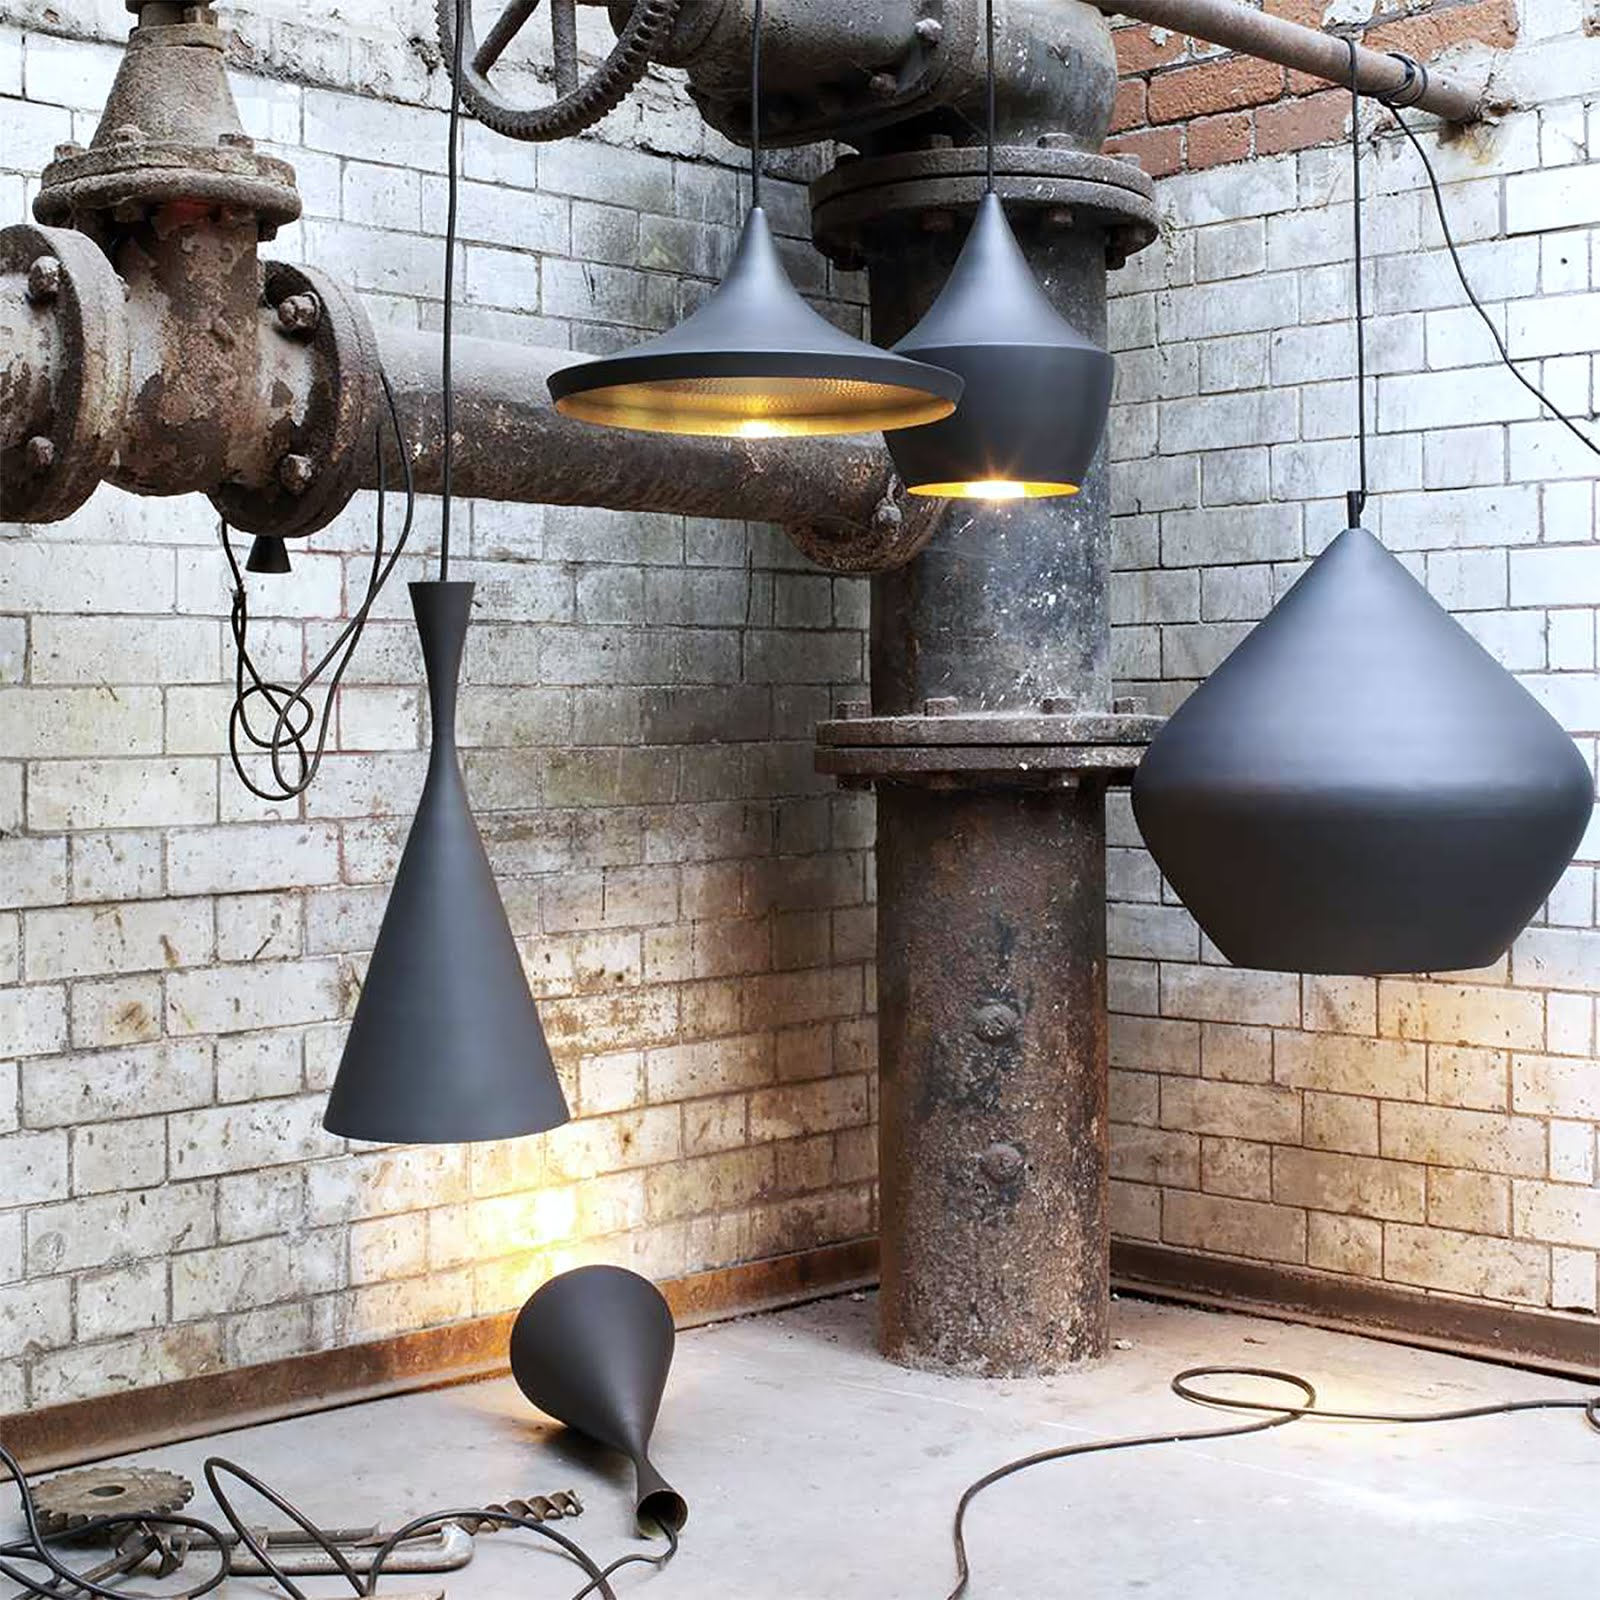 Tom dixon beat light lamps, mister design, designer lamps